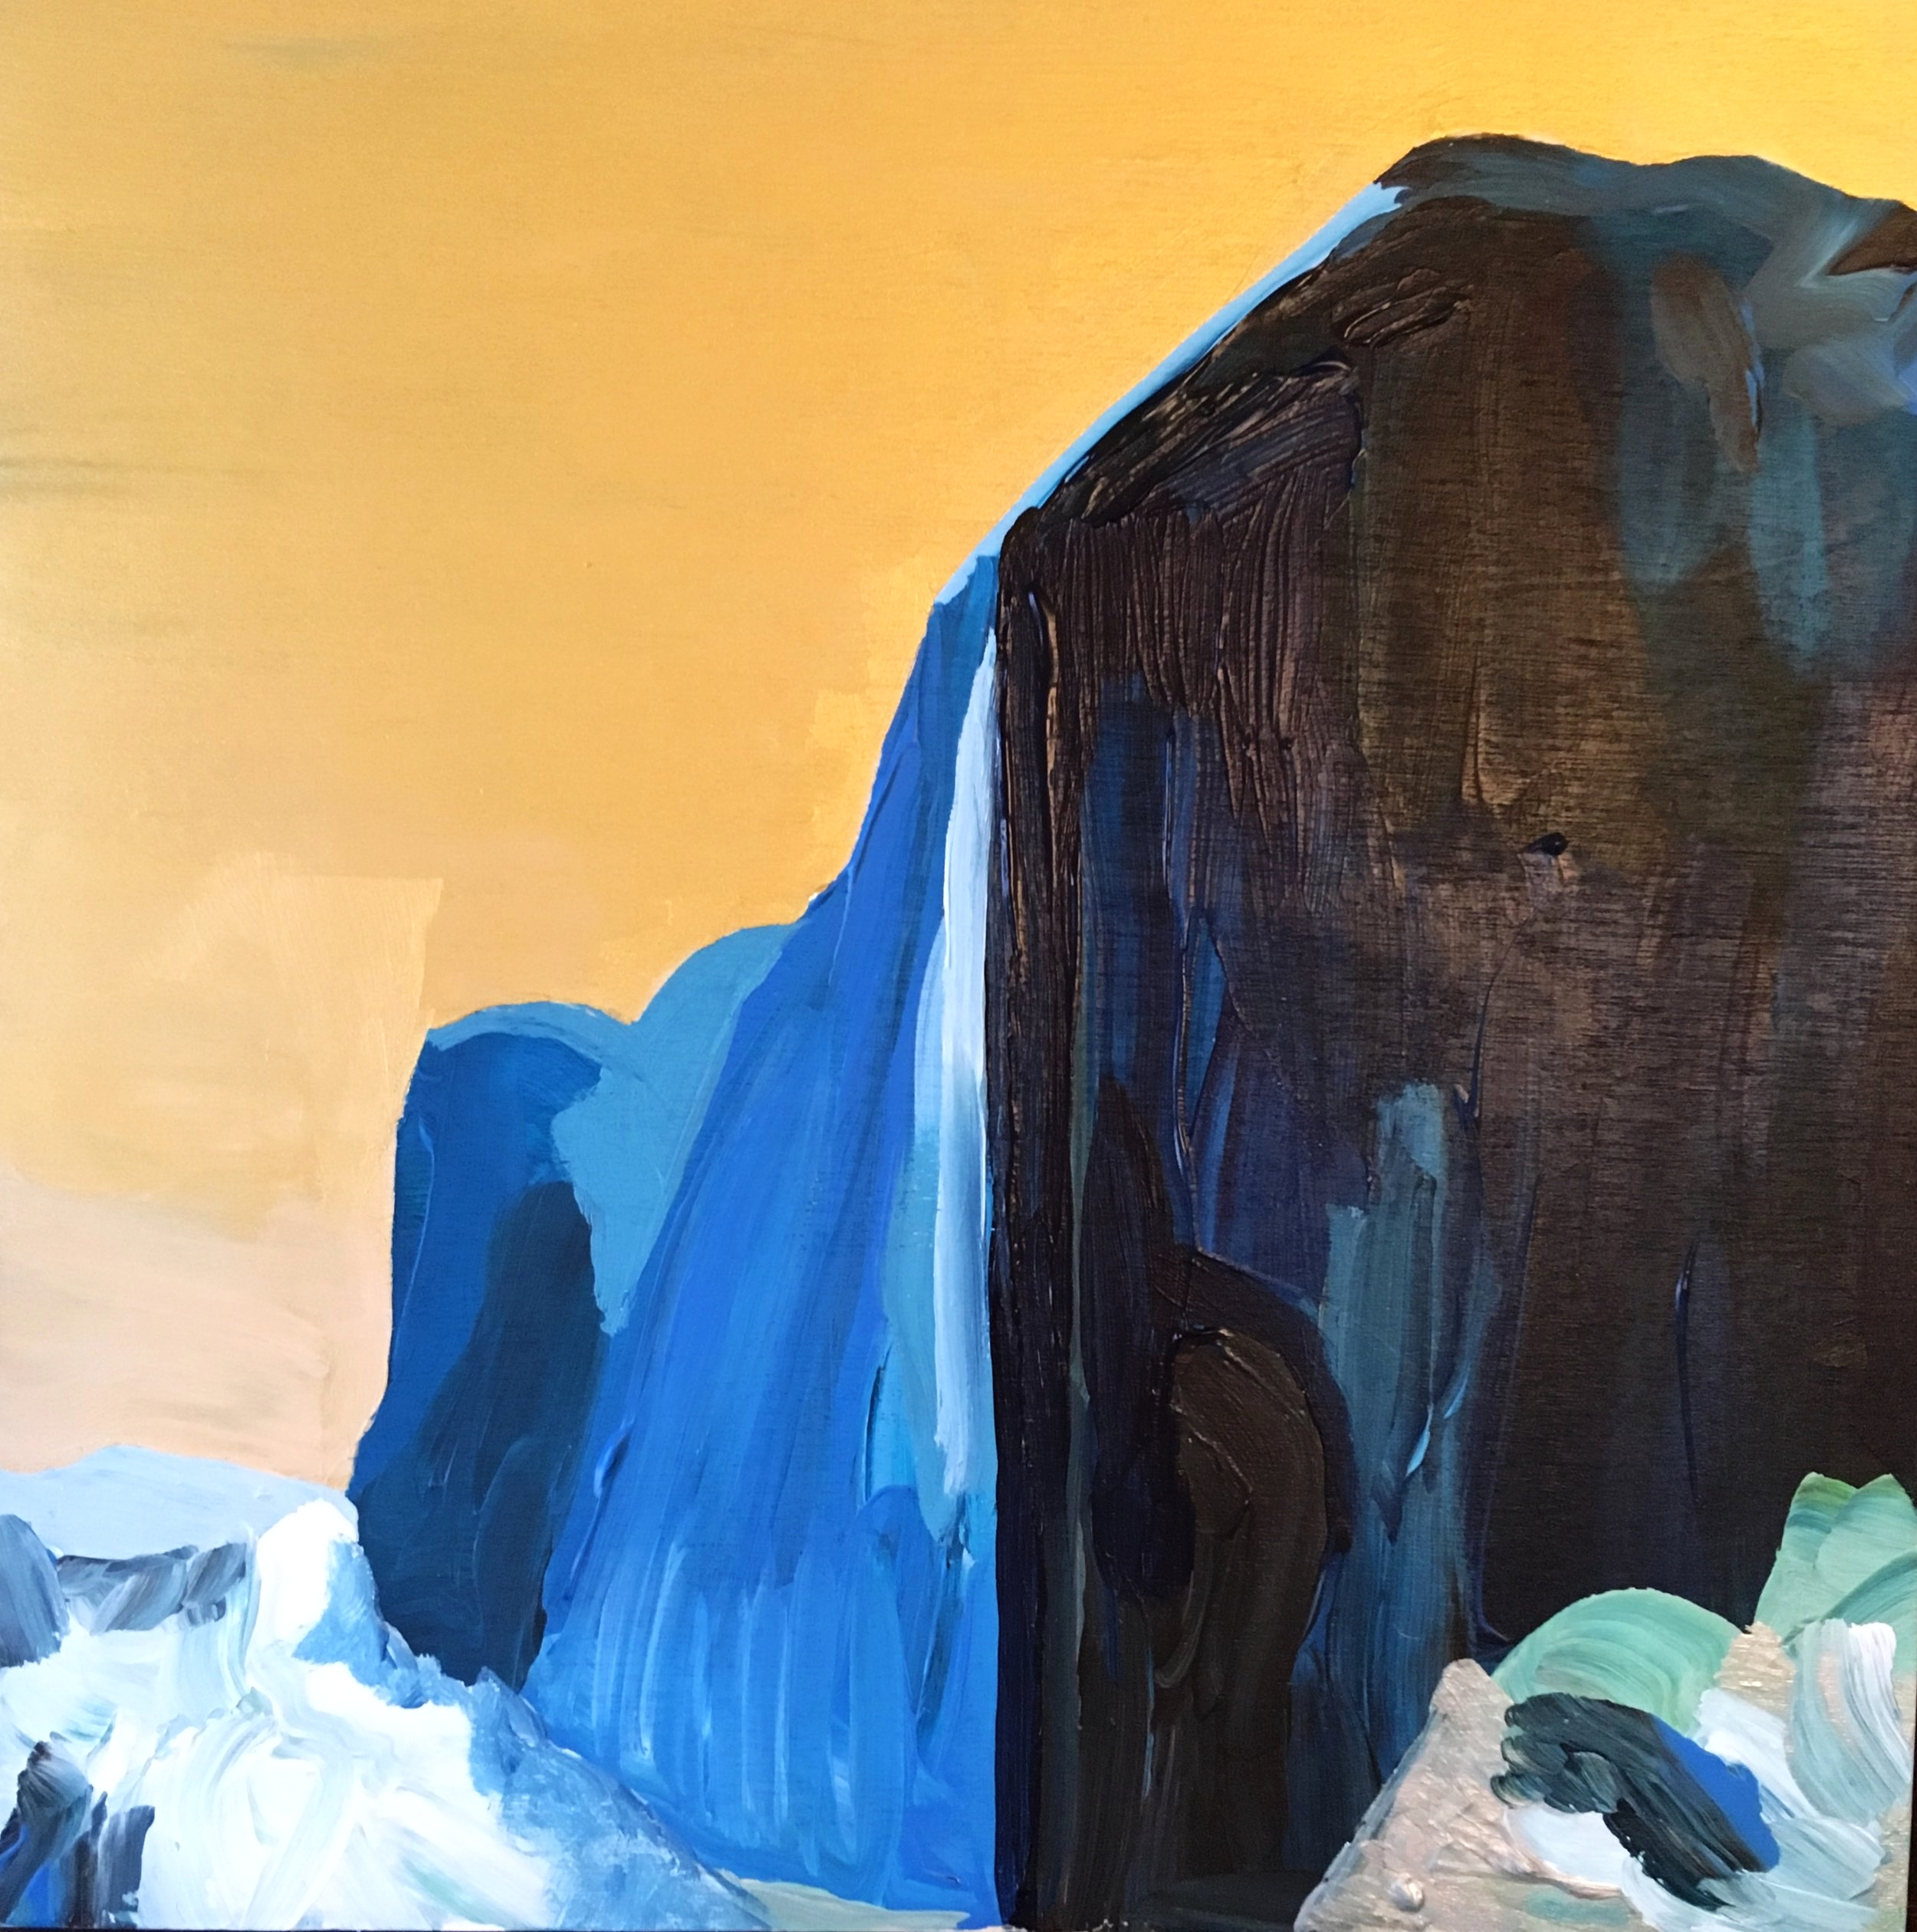 Rendering from Ansel Adams:The Face of Half Dome